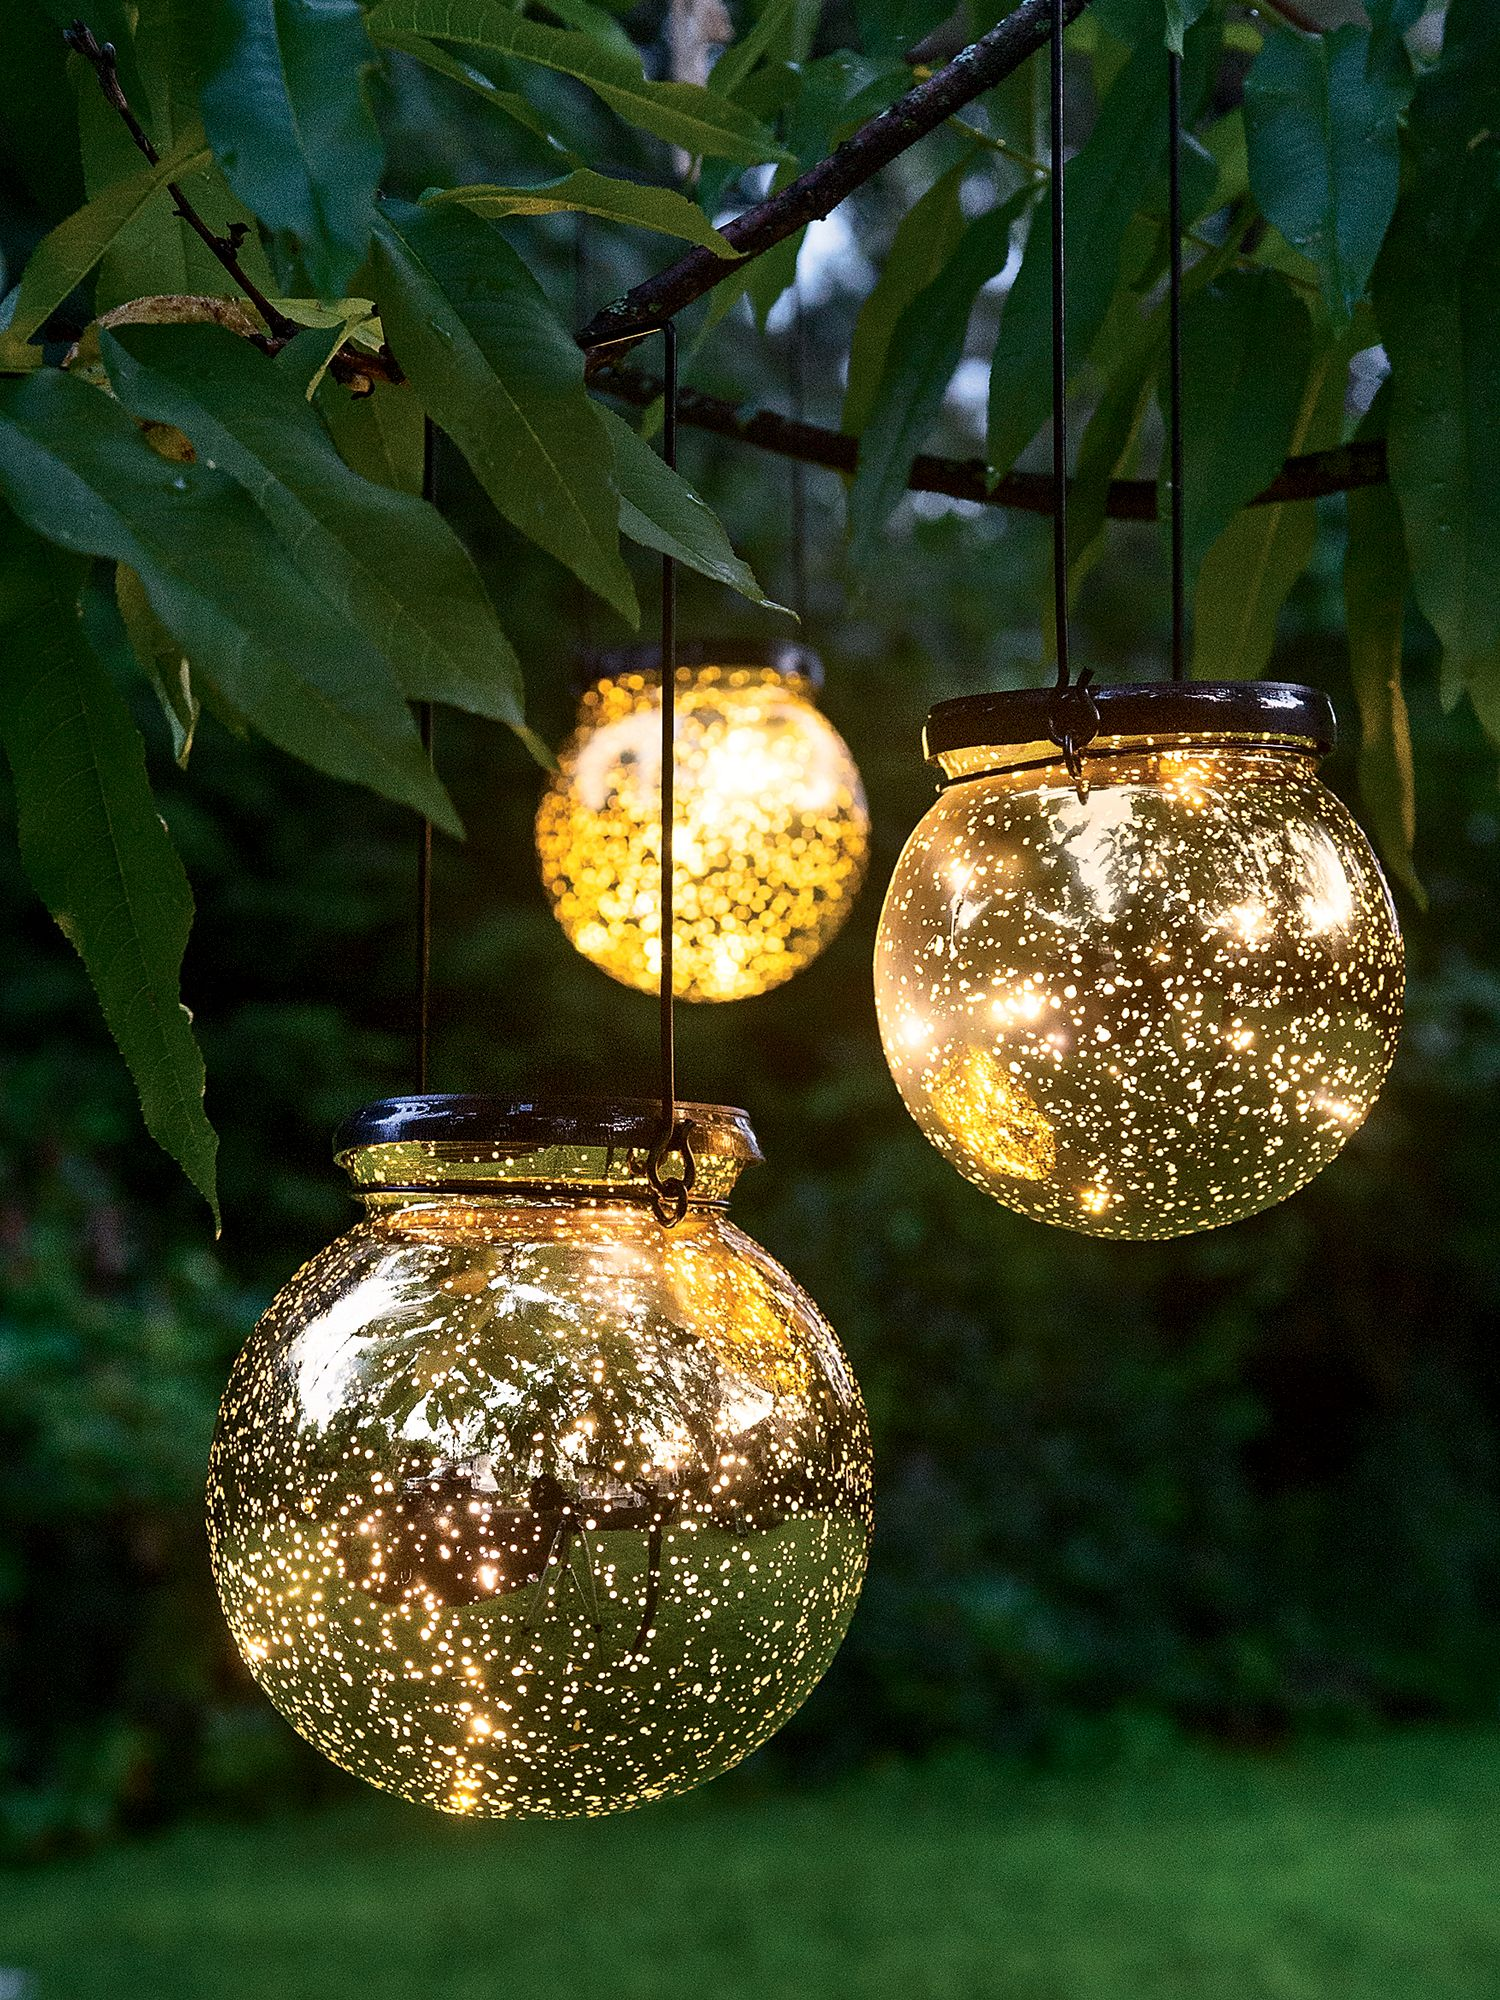 led fairy dust balls add a magical touch to porch or landscape